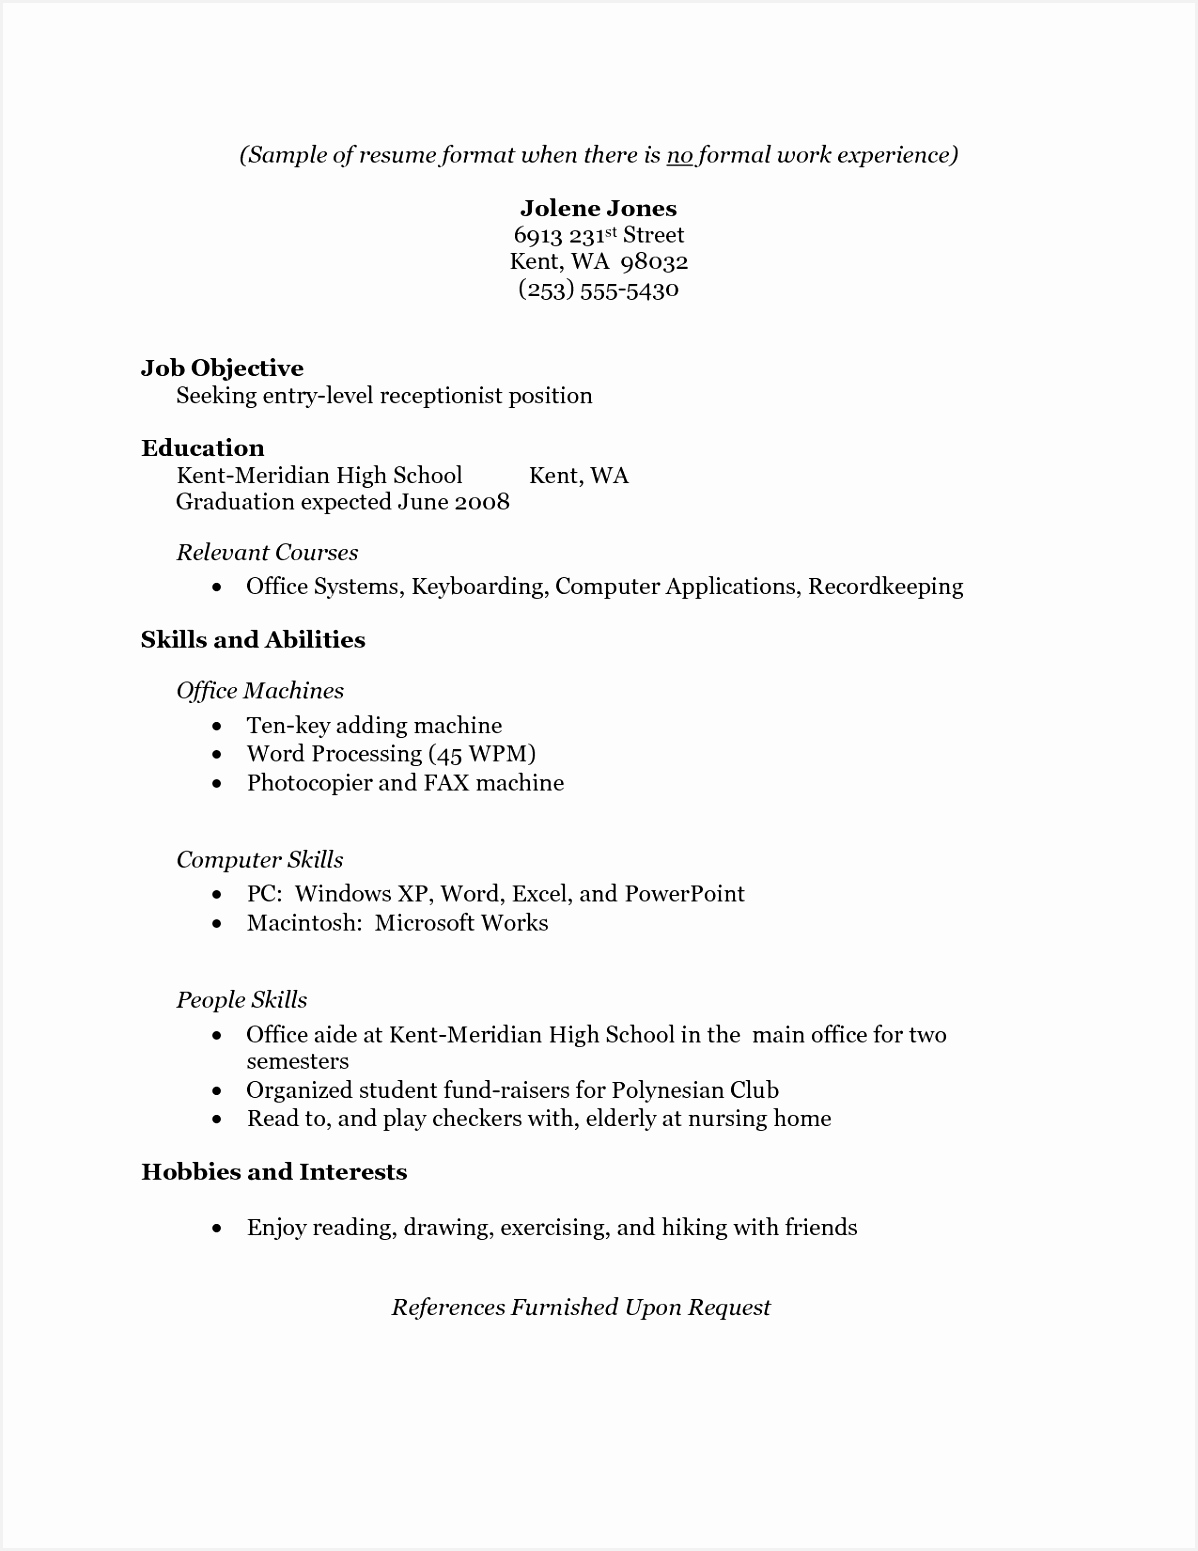 7 sample resume without work experience bvdkoe